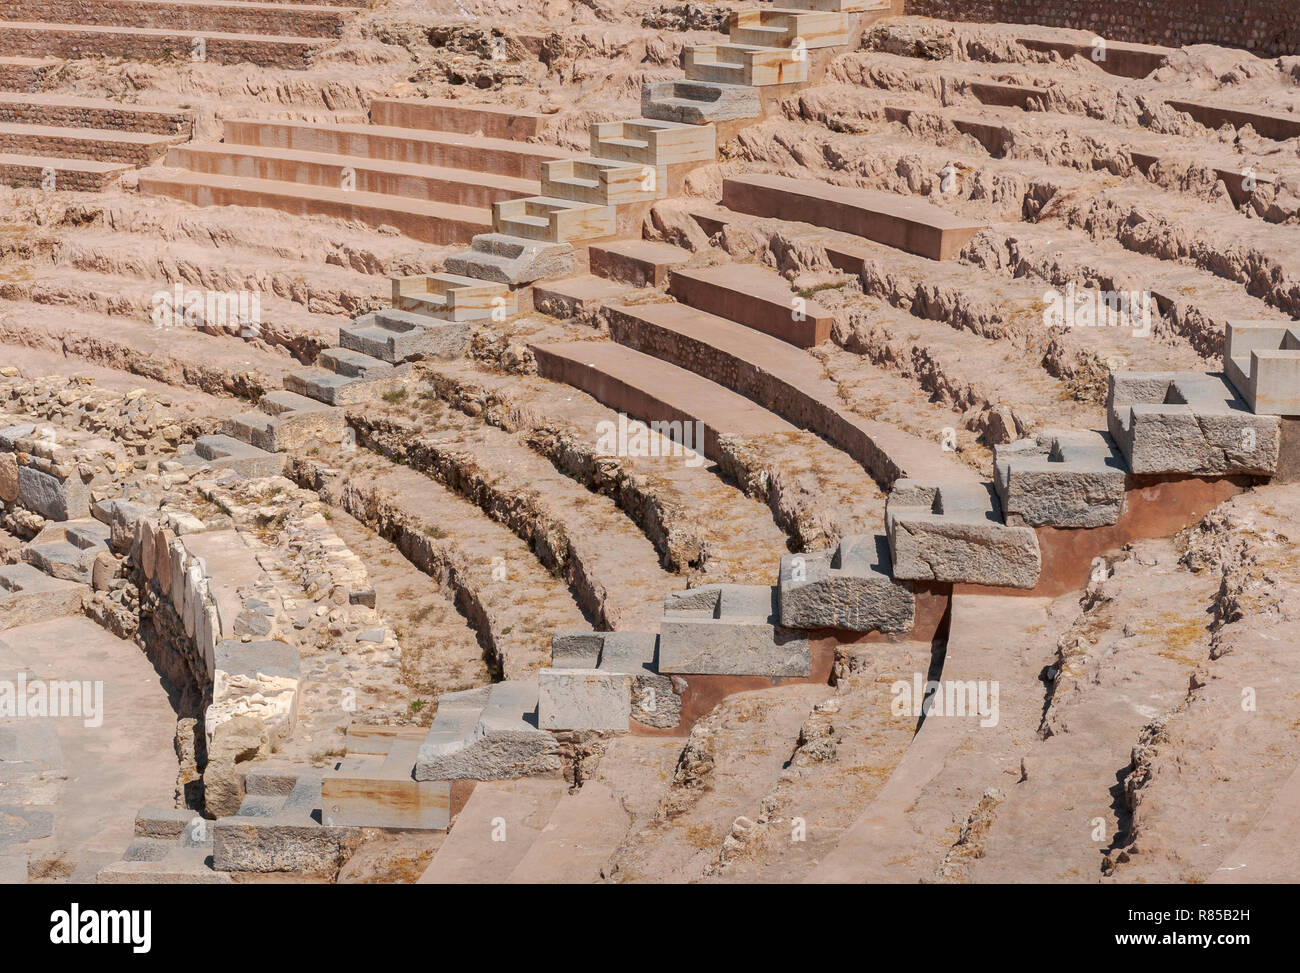 Views of the Roman Theatre of Cartagena, Spain. It was built around the year 5 BC. Stock Photo